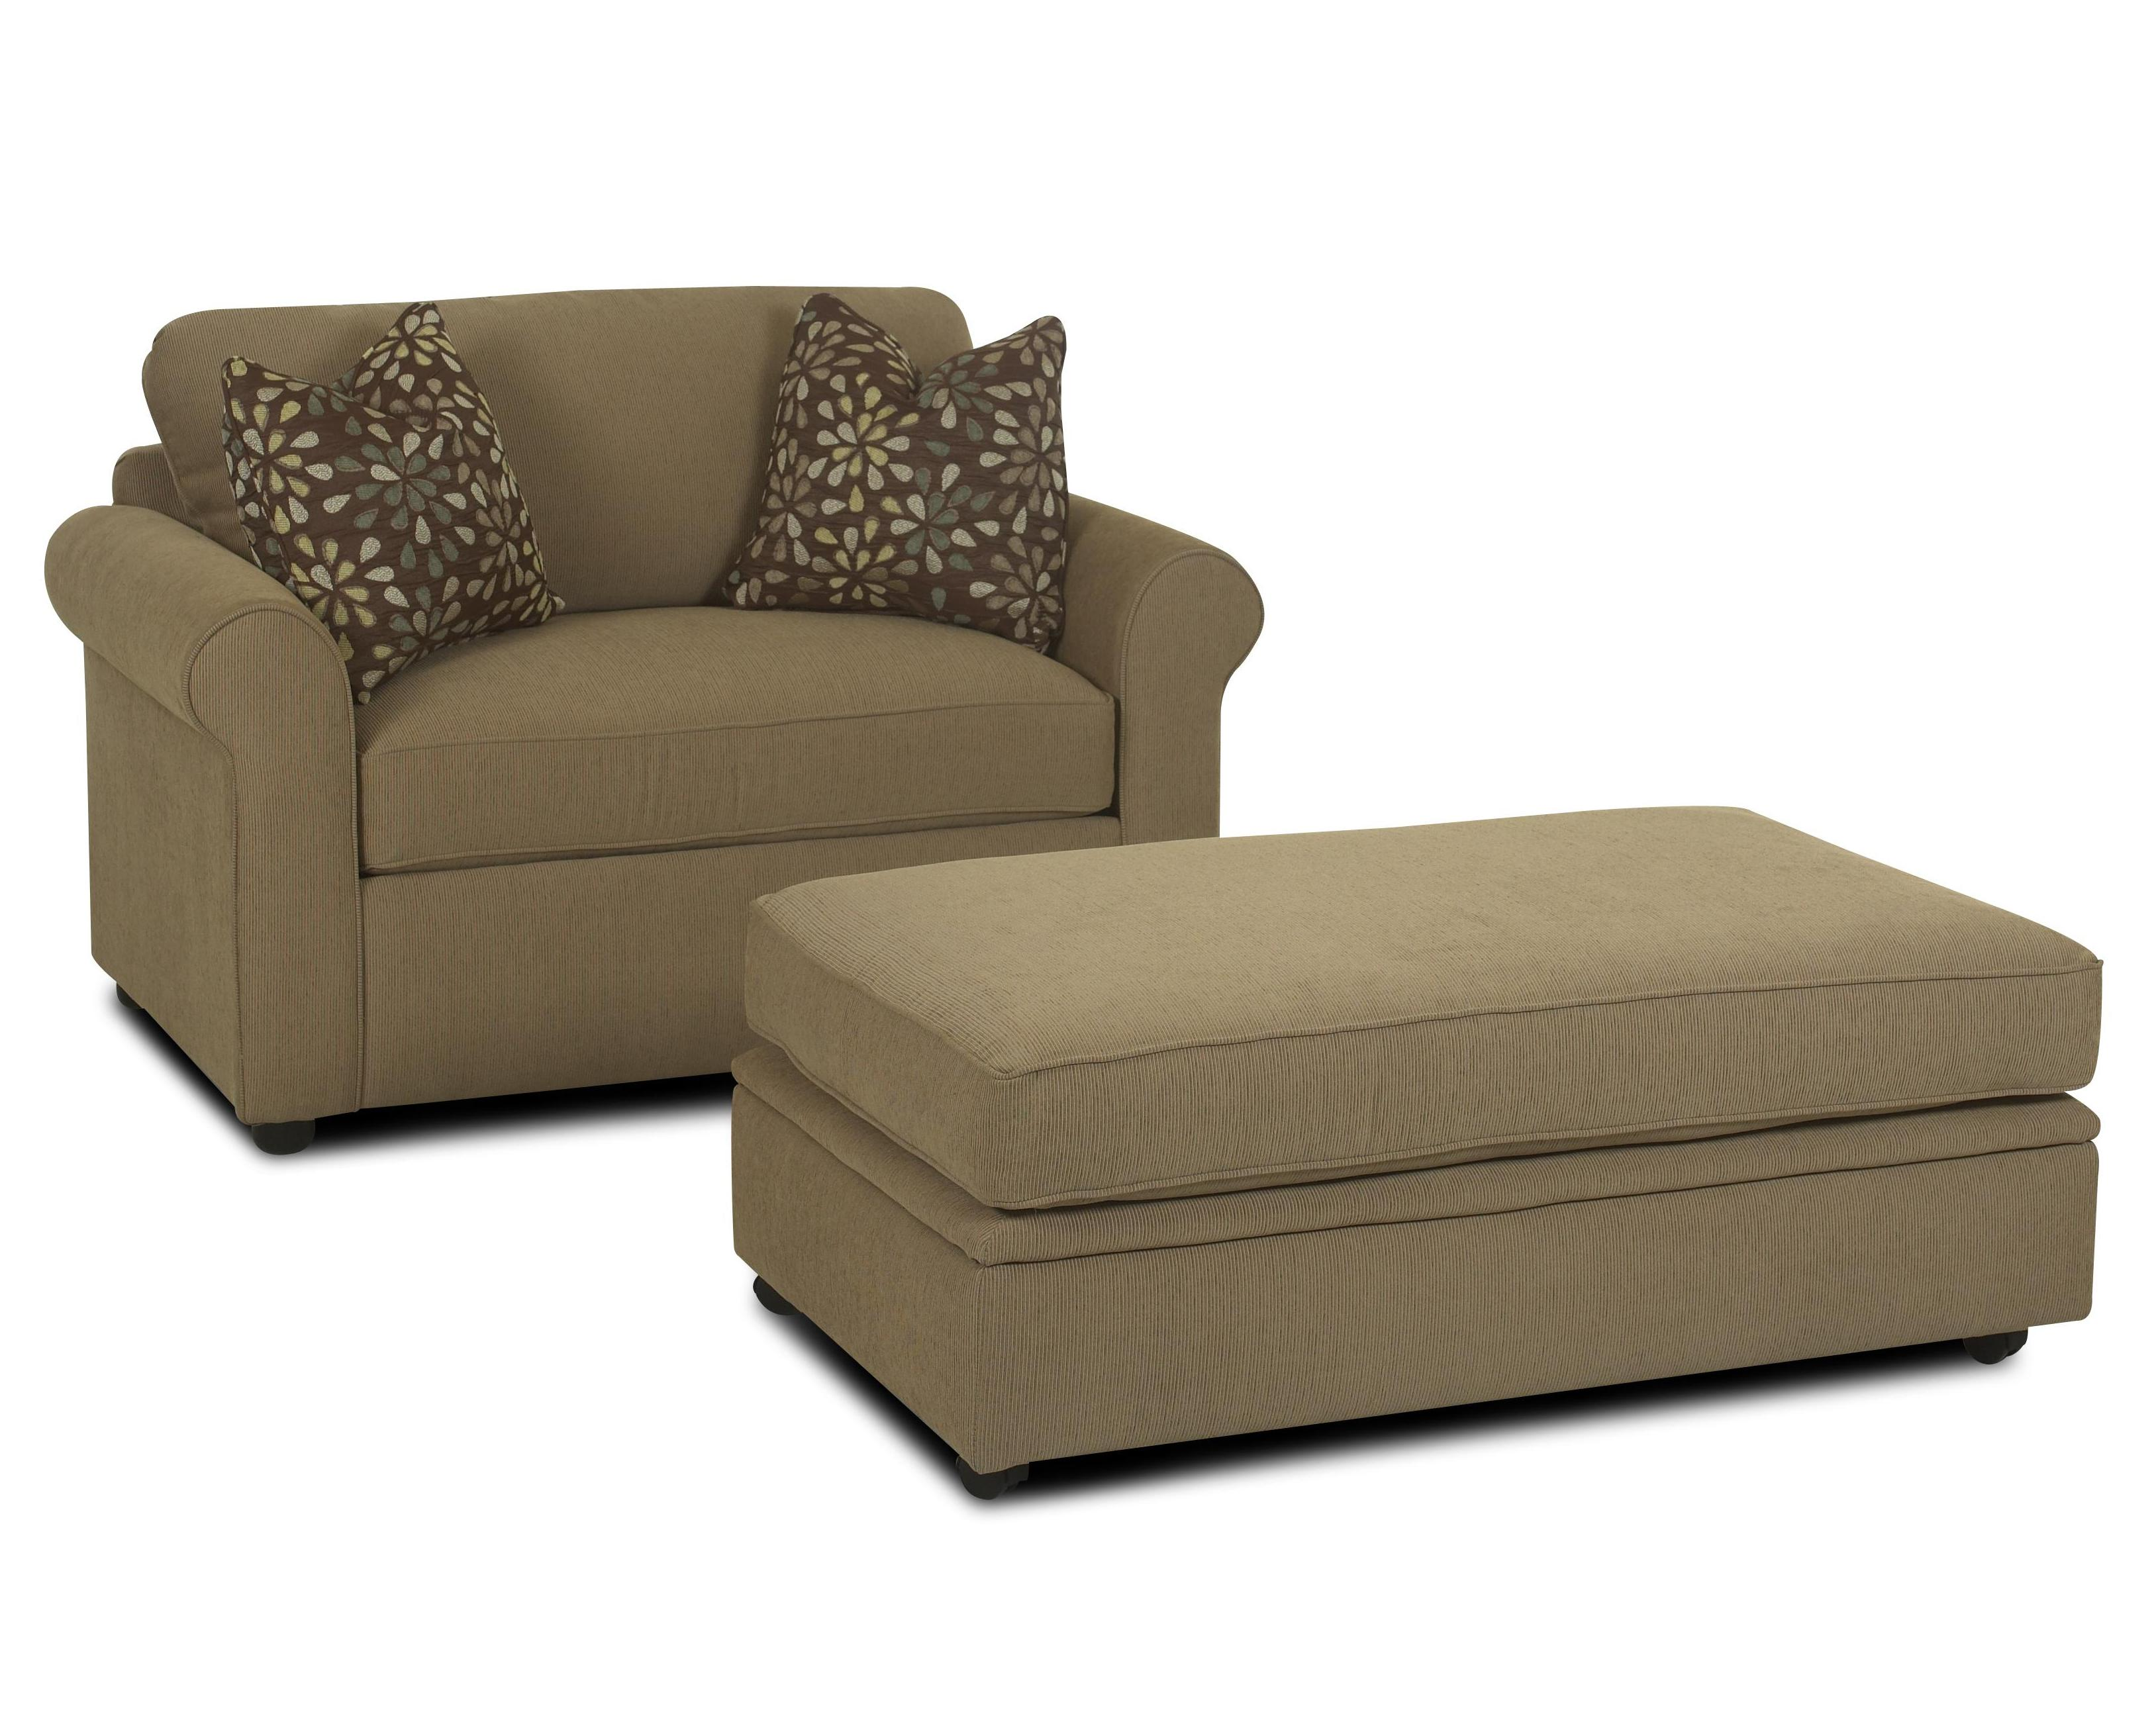 Brighton Royal Chair Sleeper & Storage Ottoman by Klaussner at Godby Home Furnishings